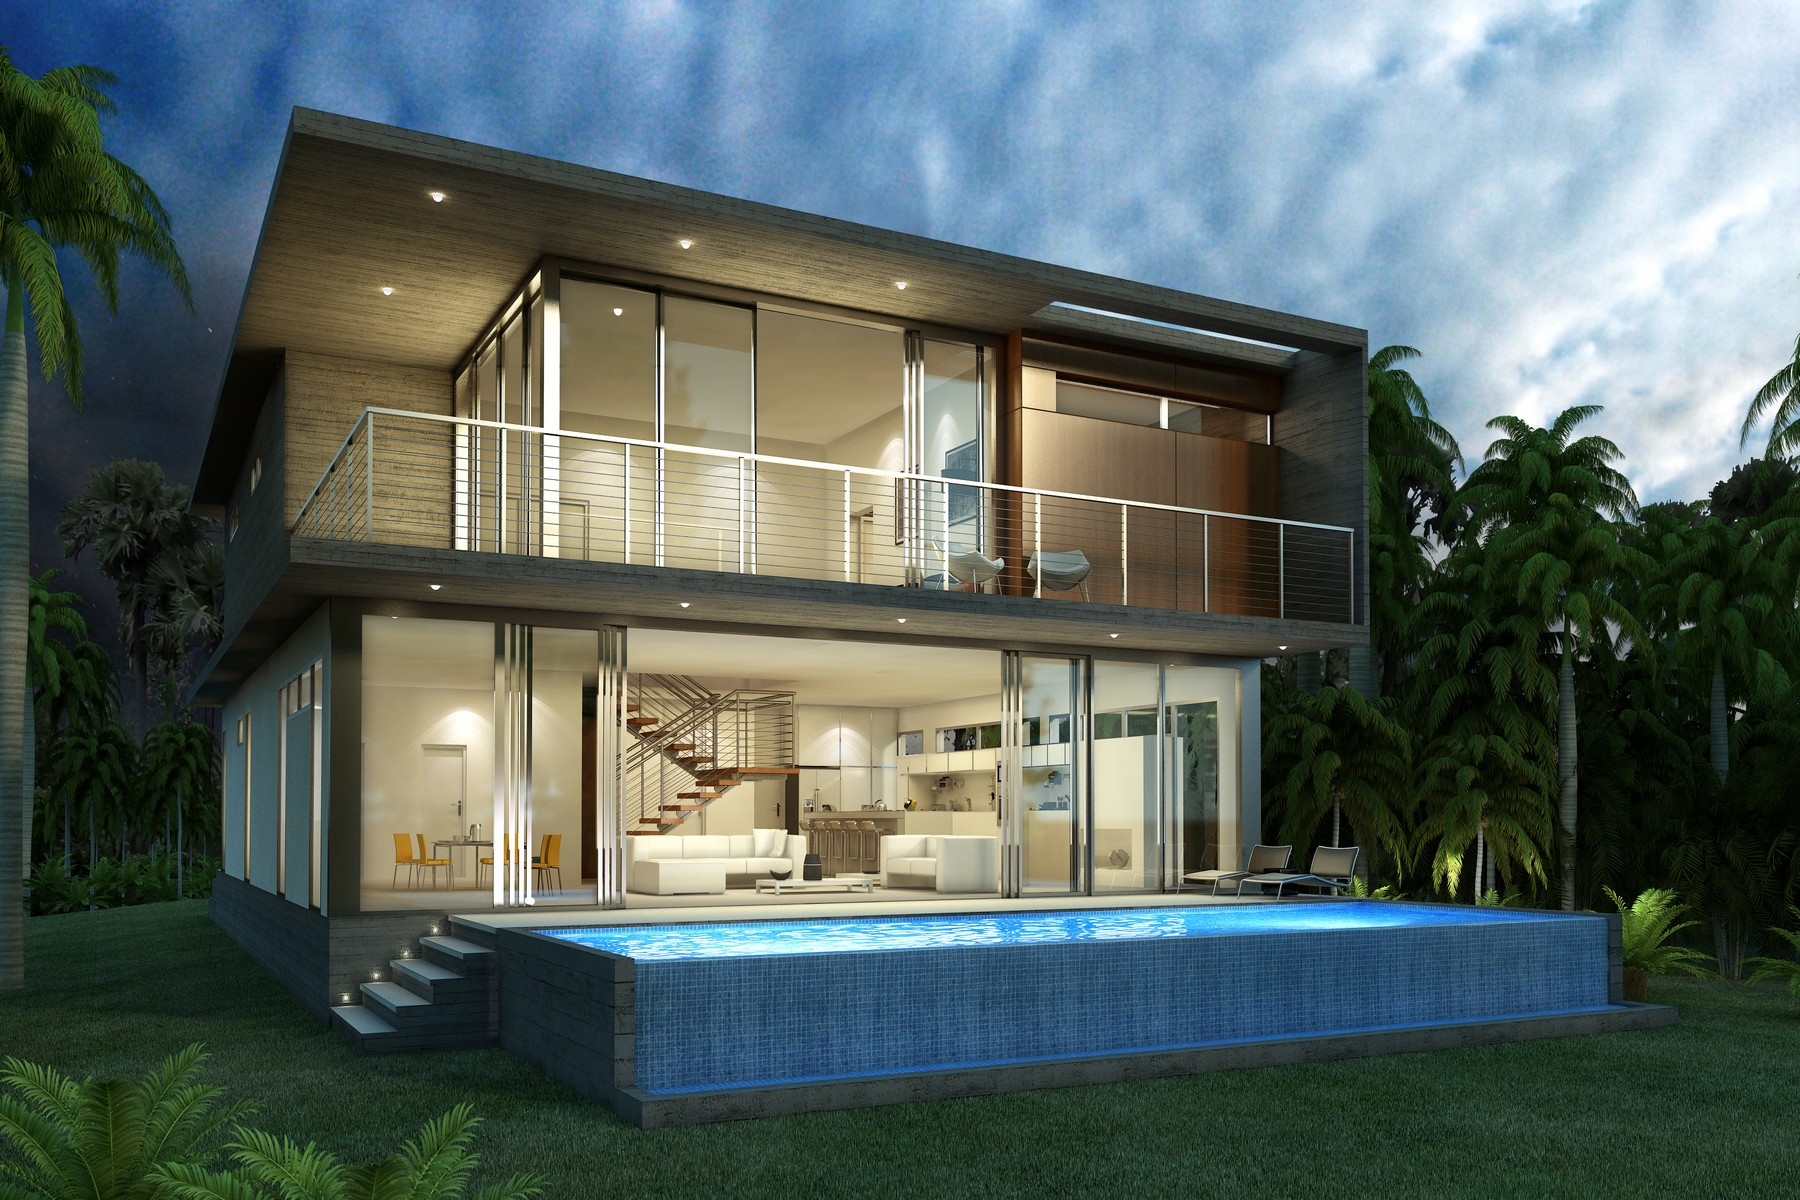 Single Family Home for Sale at 201 Palm Ave Miami Beach, Florida, 33139 United States